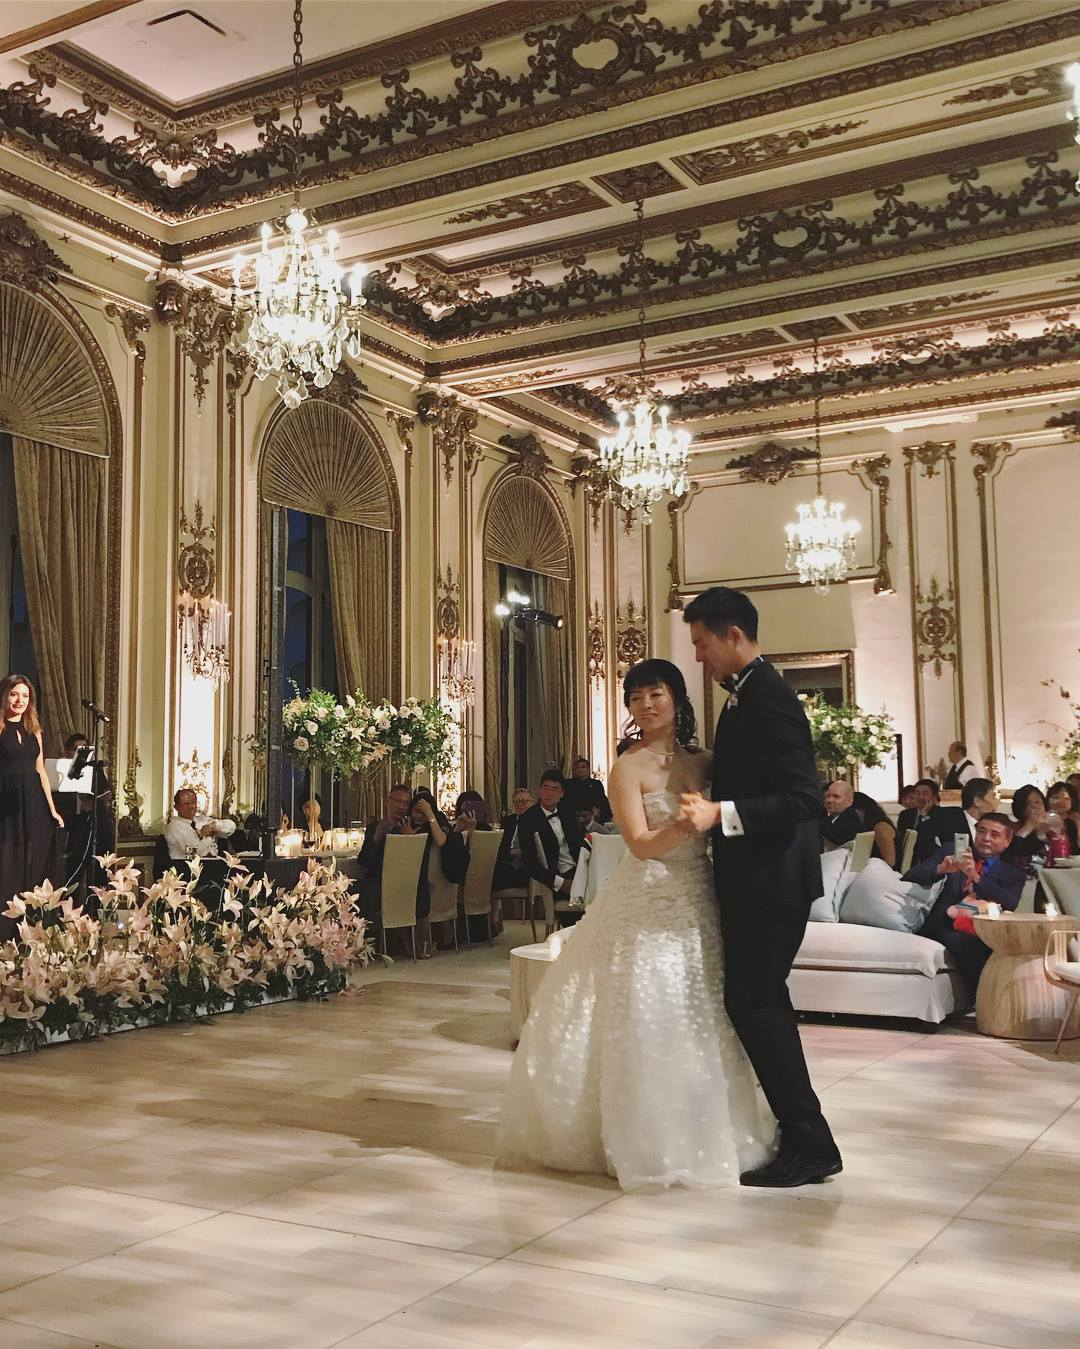 Wedding couple: Helena and Charles at the Fairmont Hotel in SF